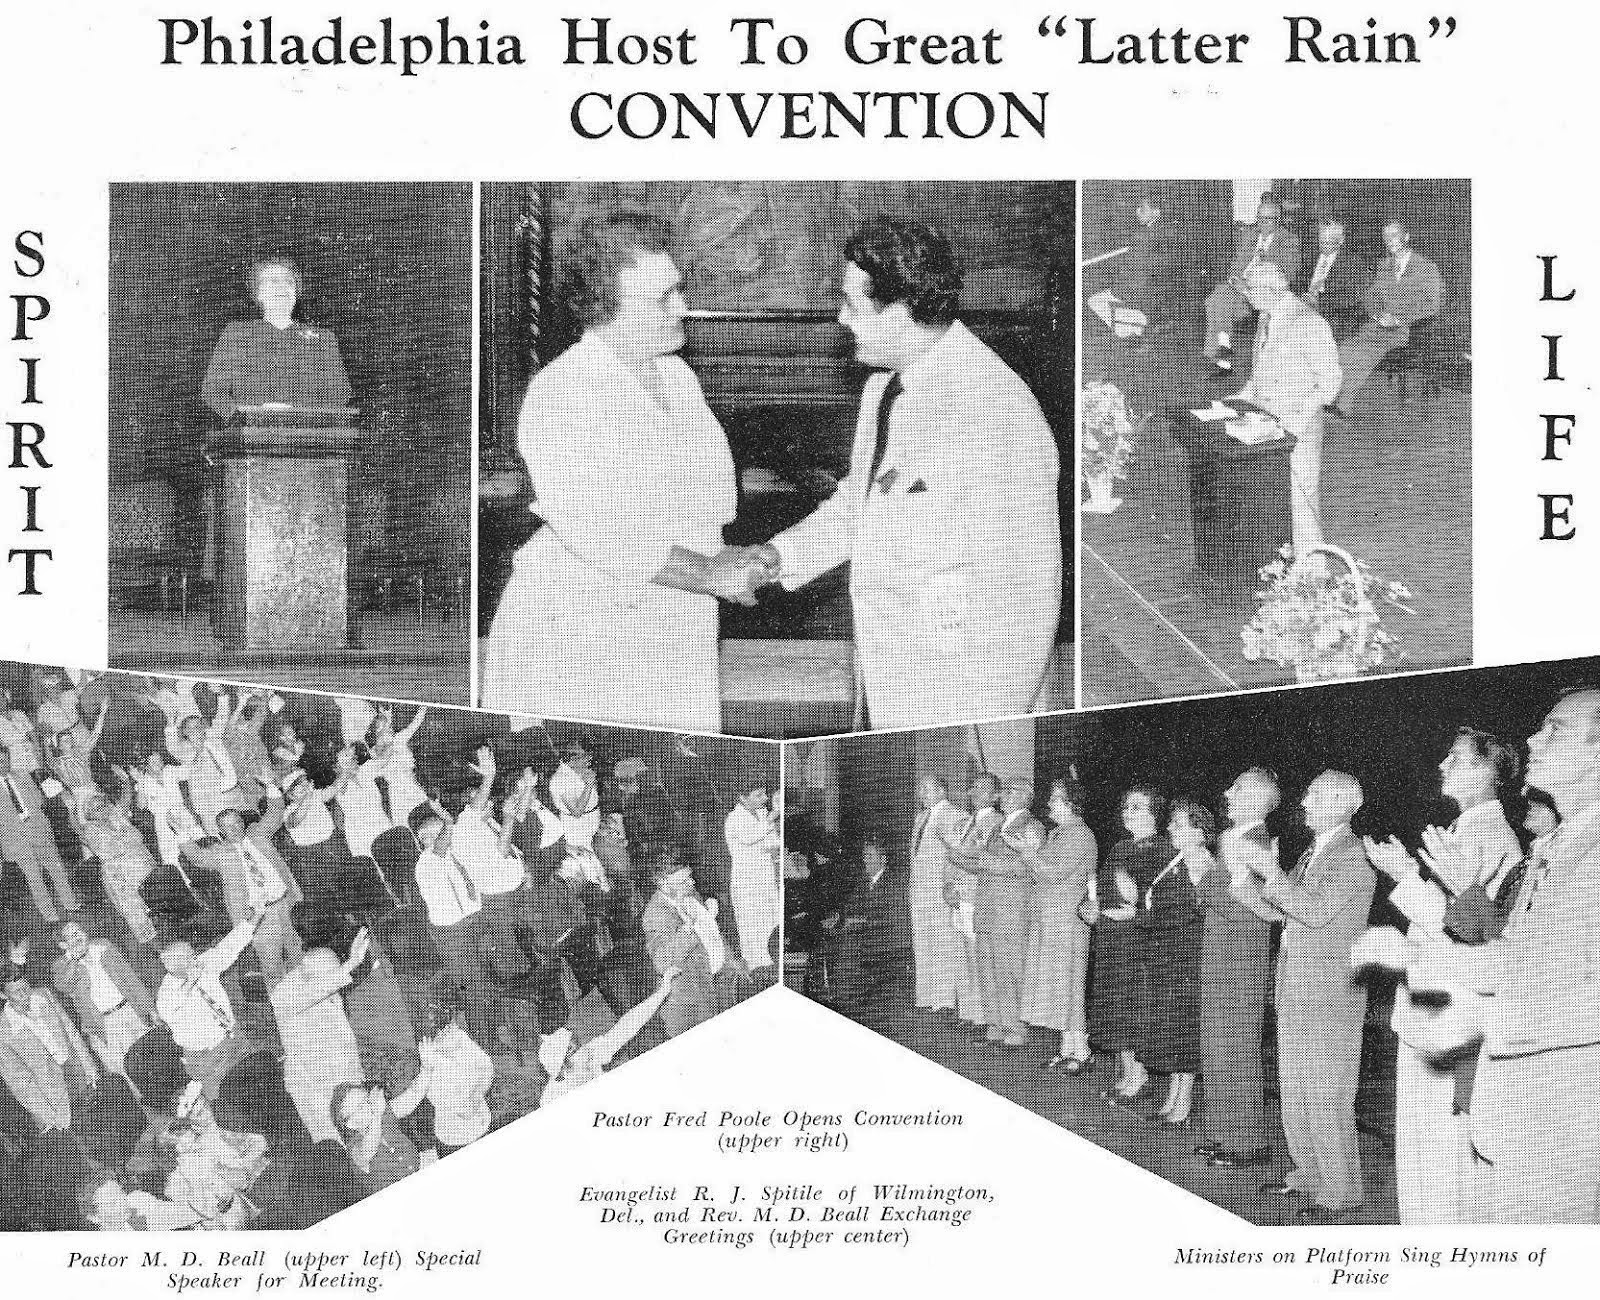 Latter Rain convention in Philadelphia, Pennsylvania (1951)